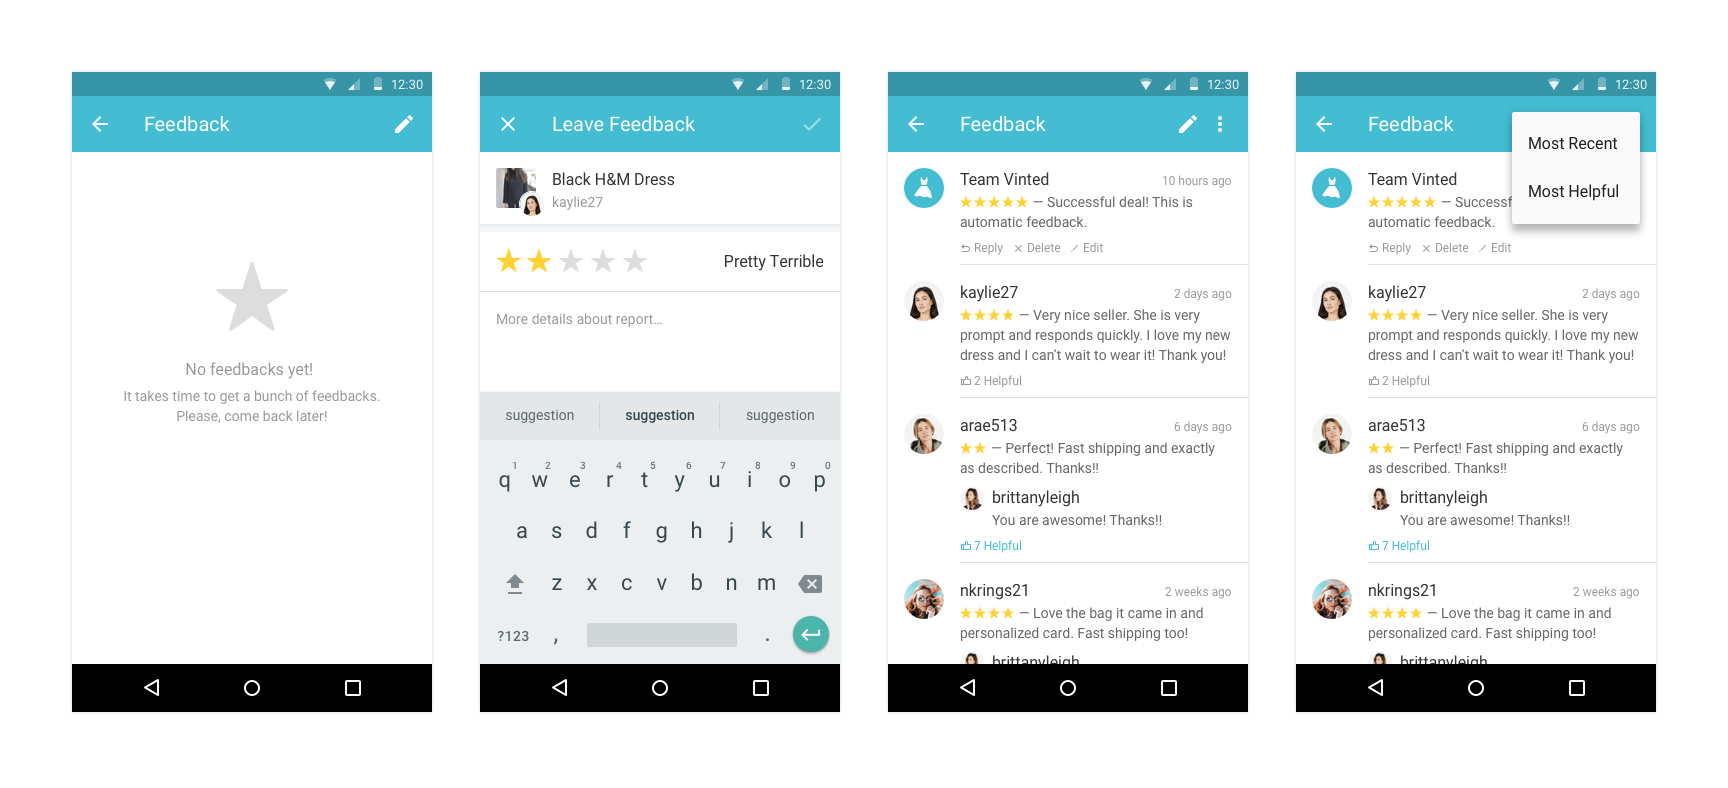 The updated flow for feedback leaving on Android.